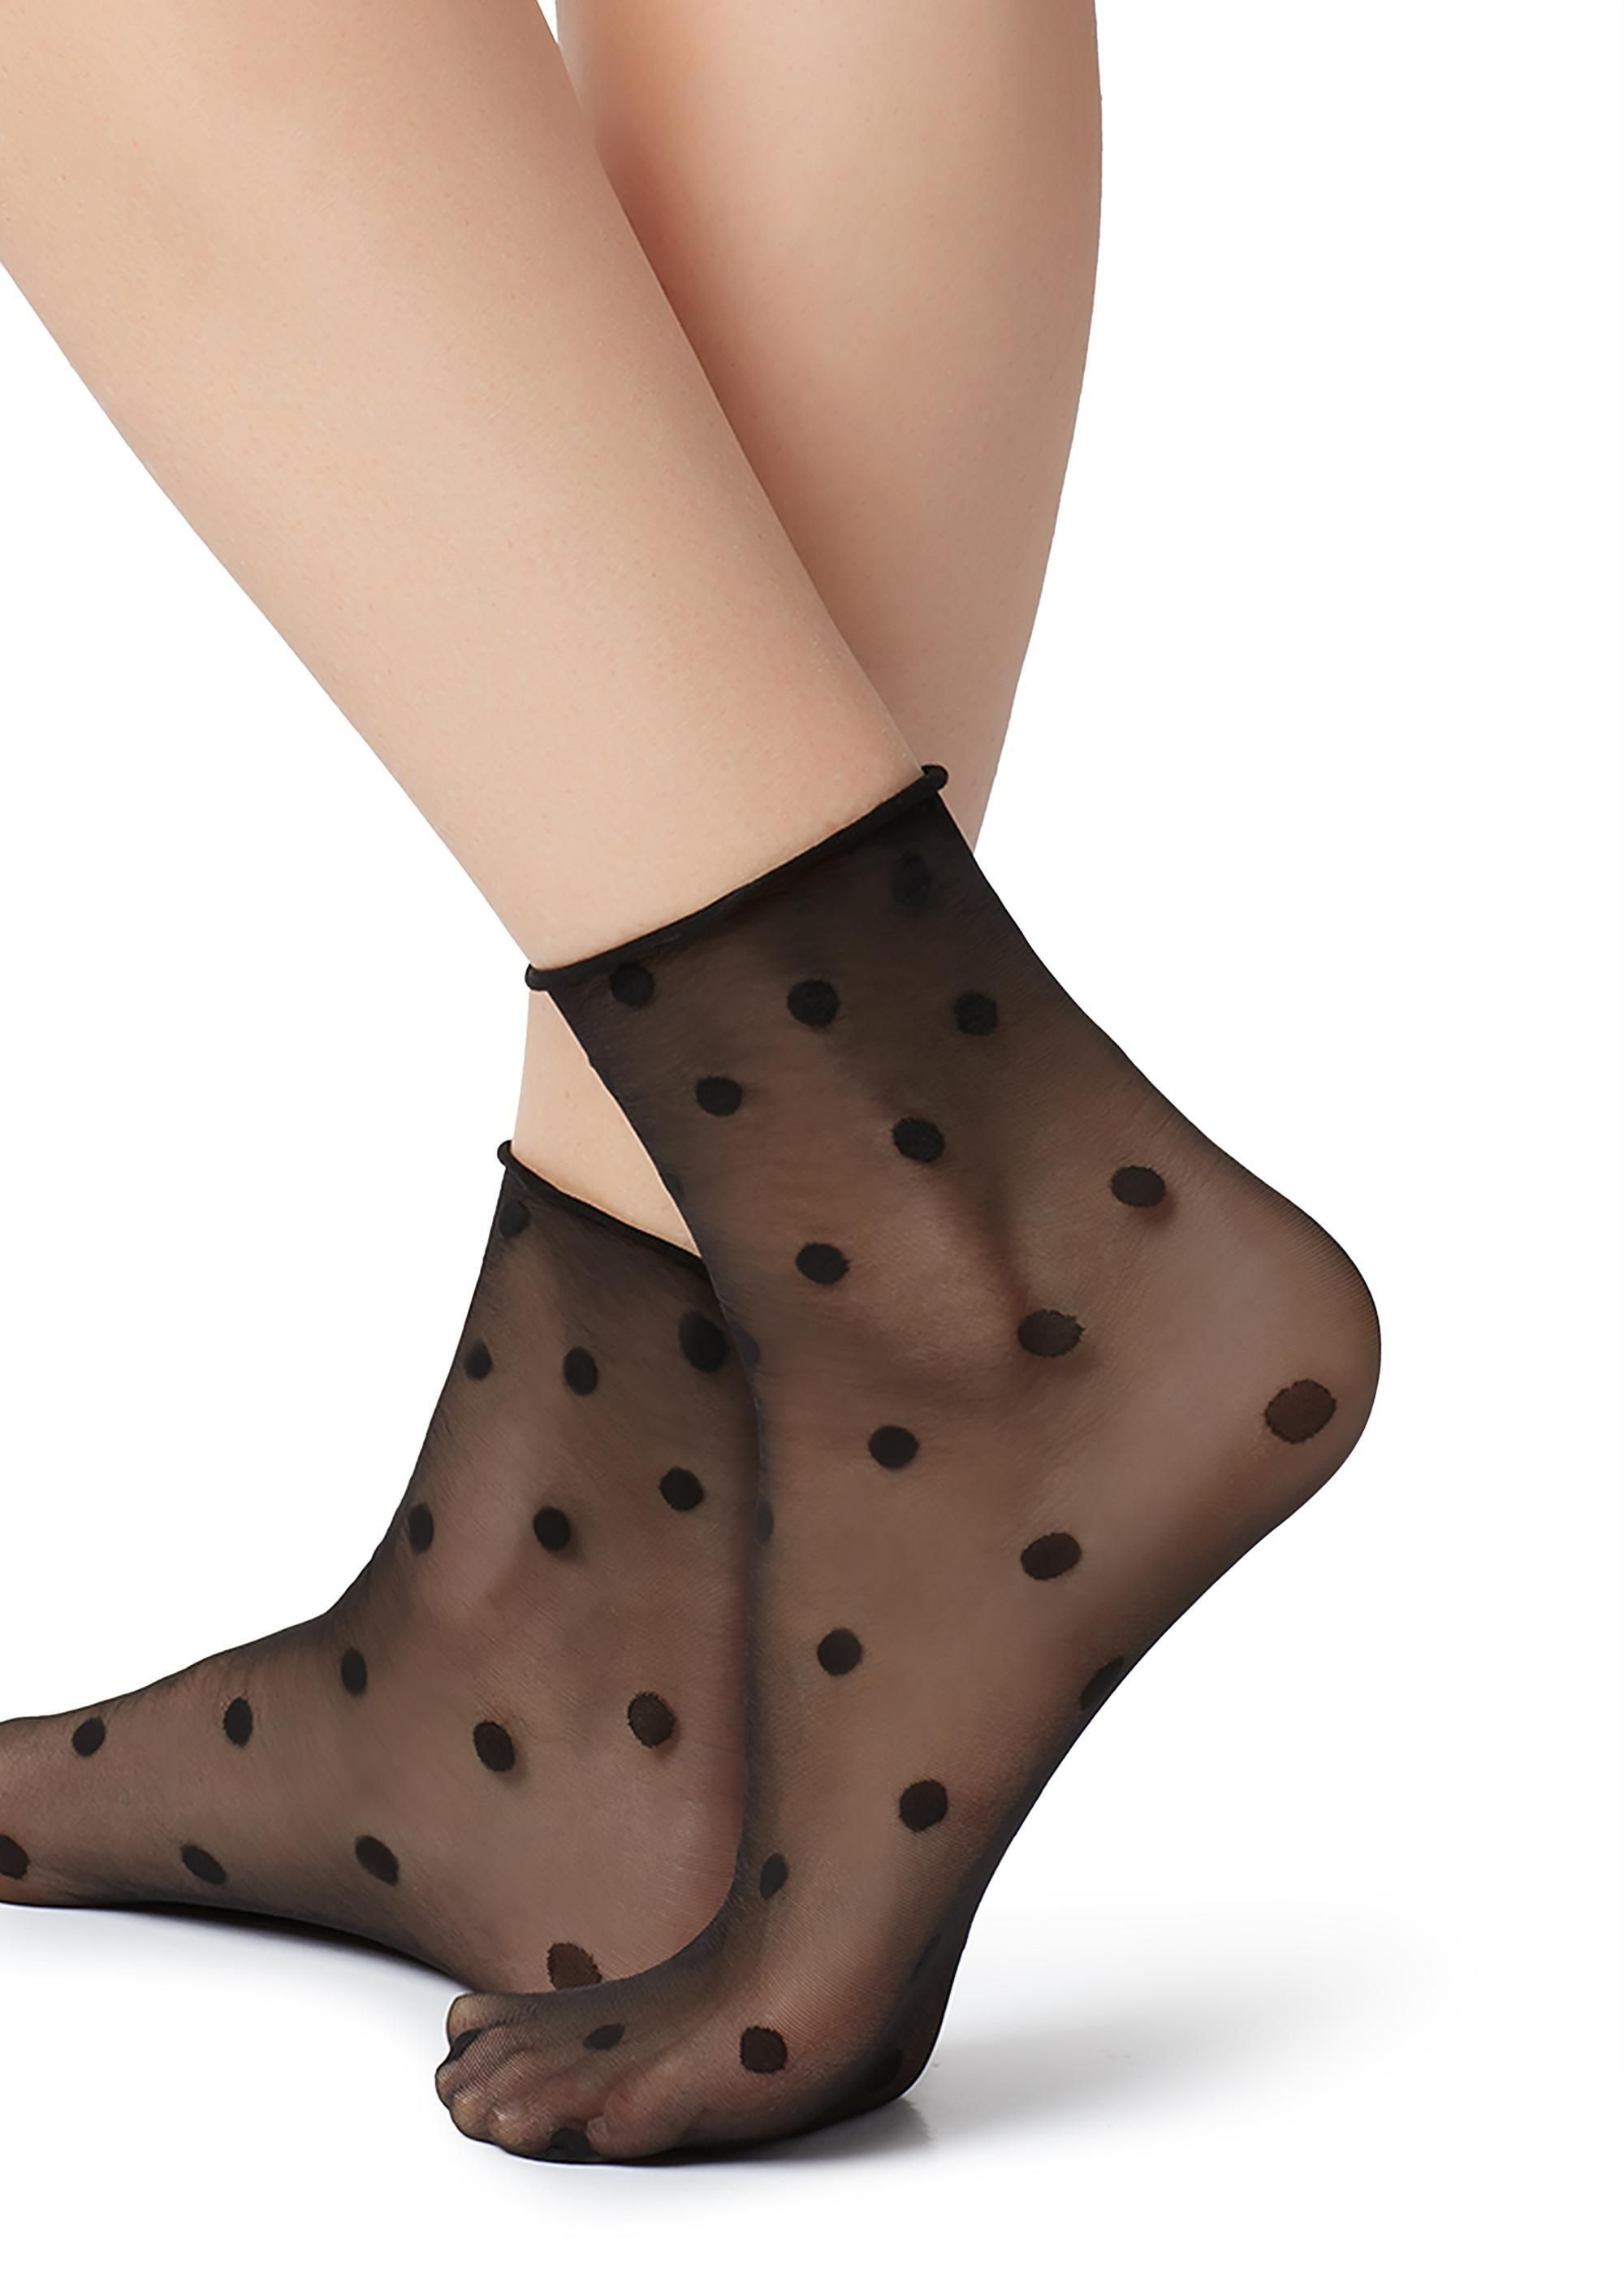 f9a19bab2f7 Buy Patterned Socks on our official Calzedonia website. Experience our long  history of tradition and quality.